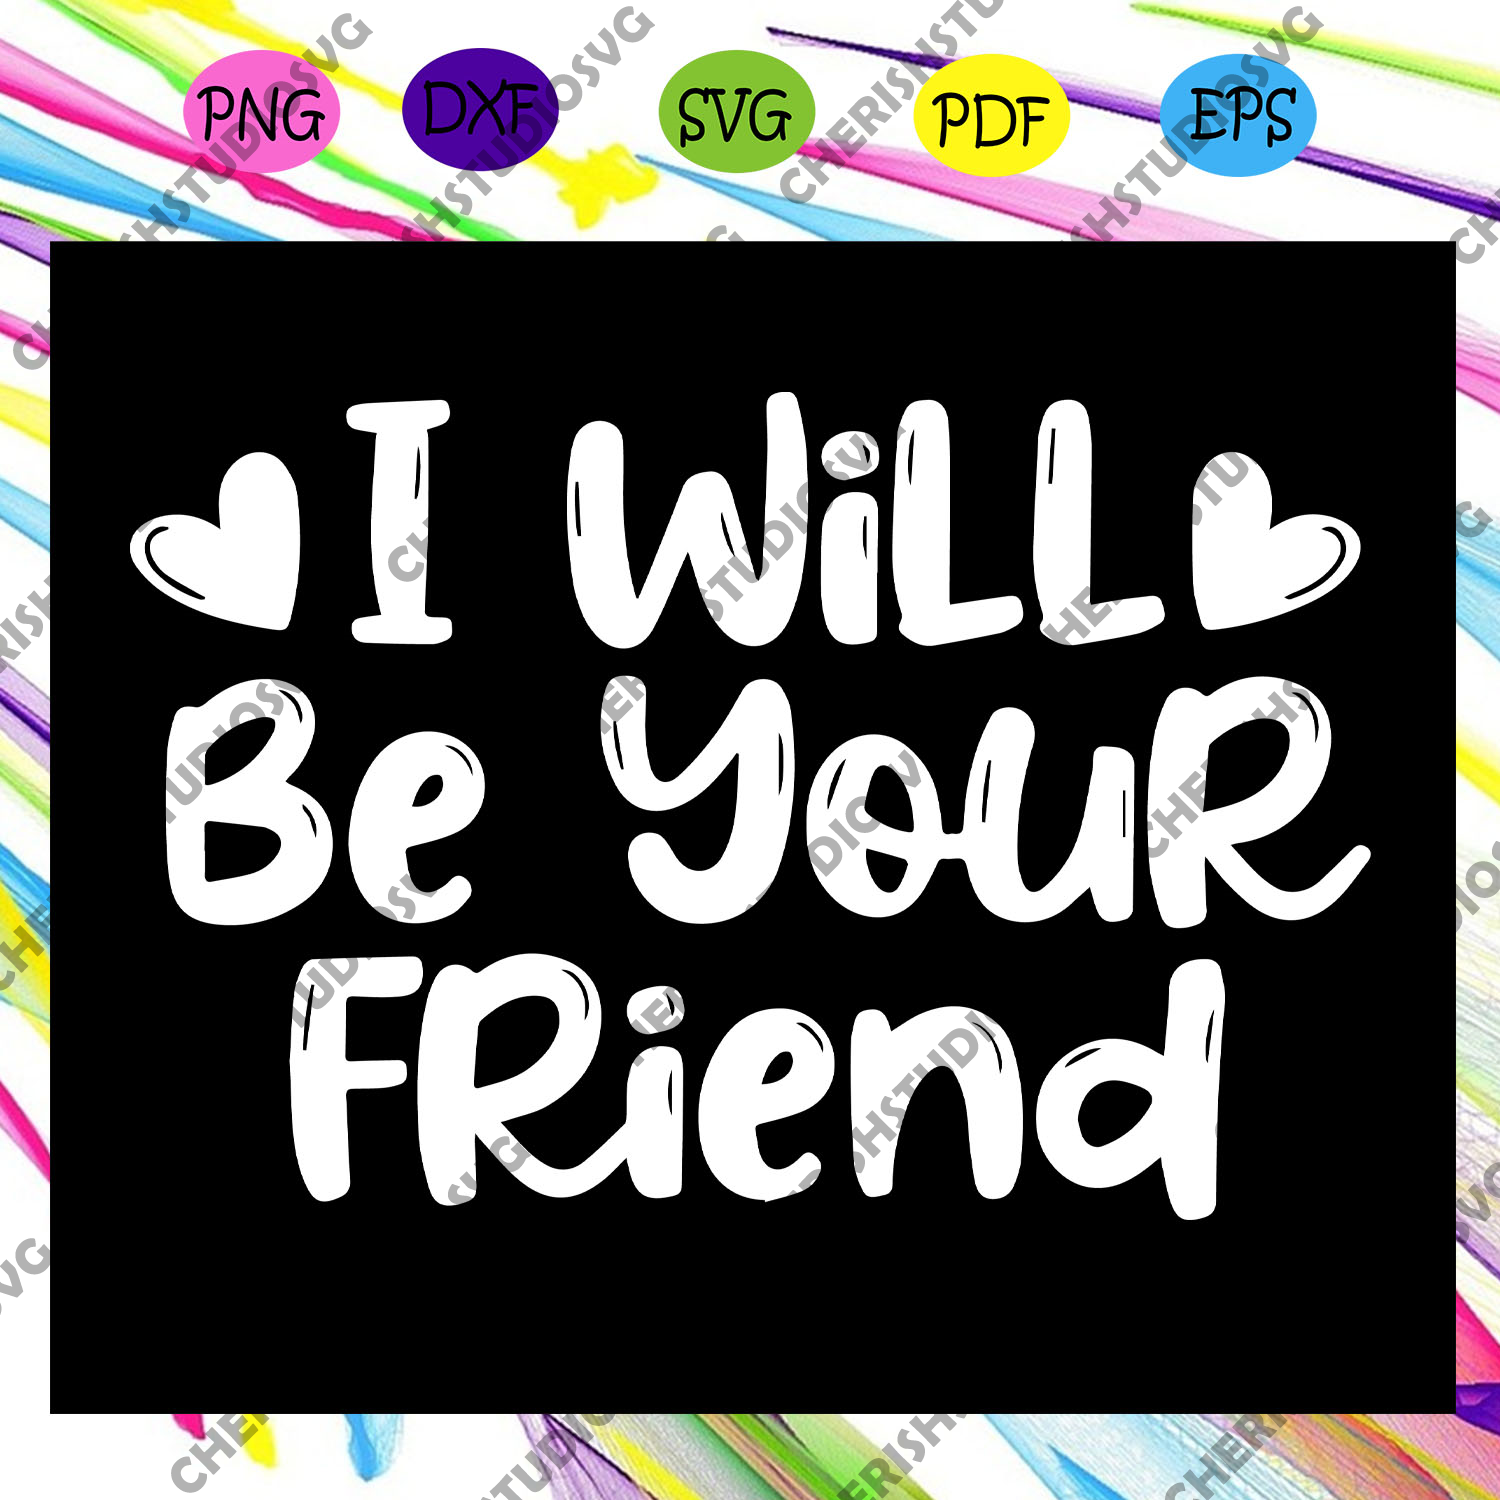 I will be your friend, friends font svg, friends gift, friends shirt, friends font, friends tv show,friends font png, friends svg,trending svg For Silhouette, Files For Cricut, SVG, DXF, EPS, PNG Instant Download